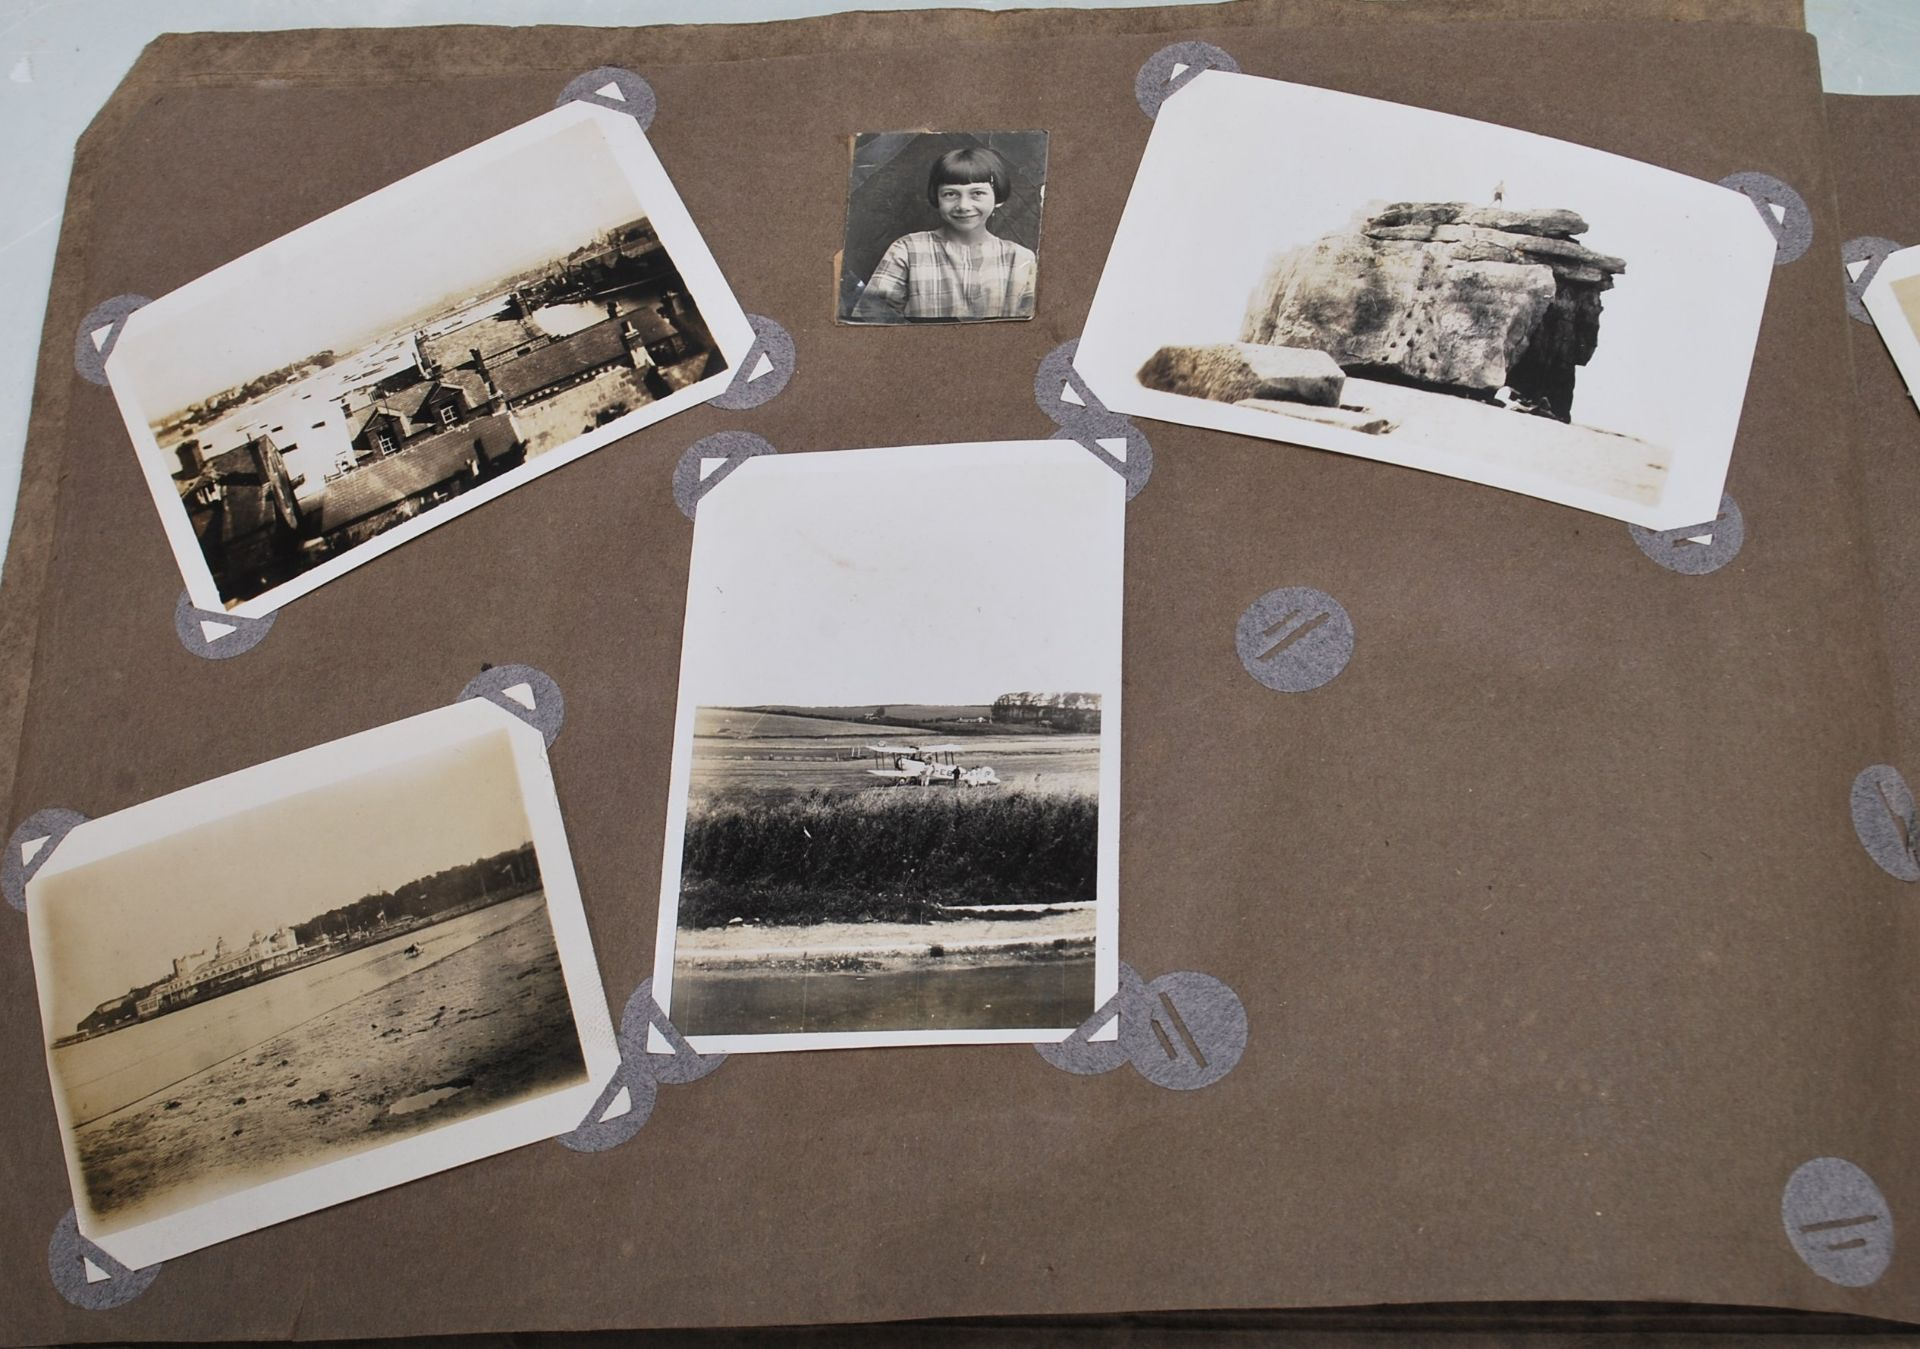 EARLY 20TH CENTURY BLACK AND WHITE PHOTO ALBUM - Image 3 of 14